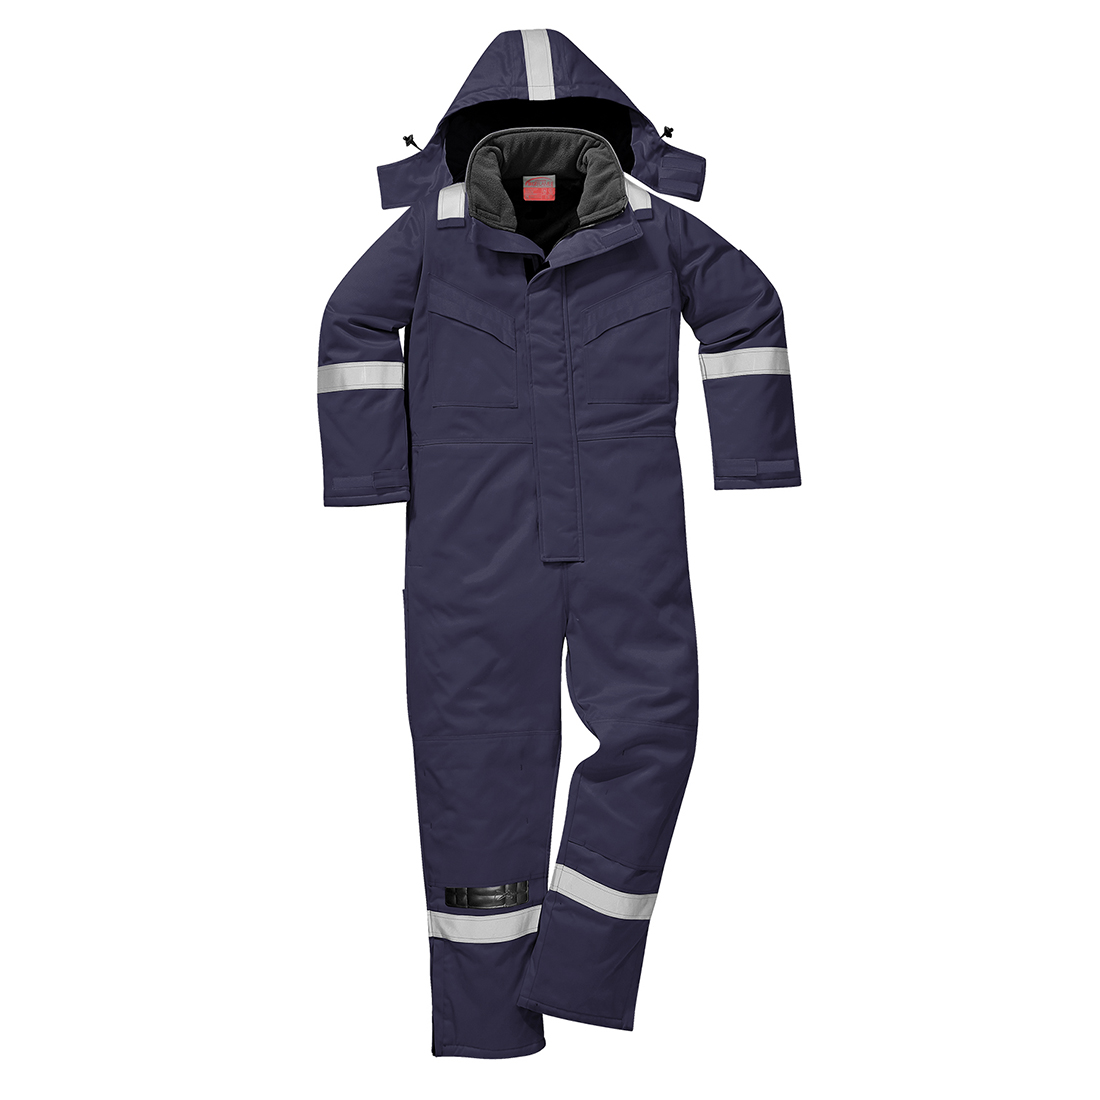 Portwest FR Anti-Static Winter Coverall - FR53